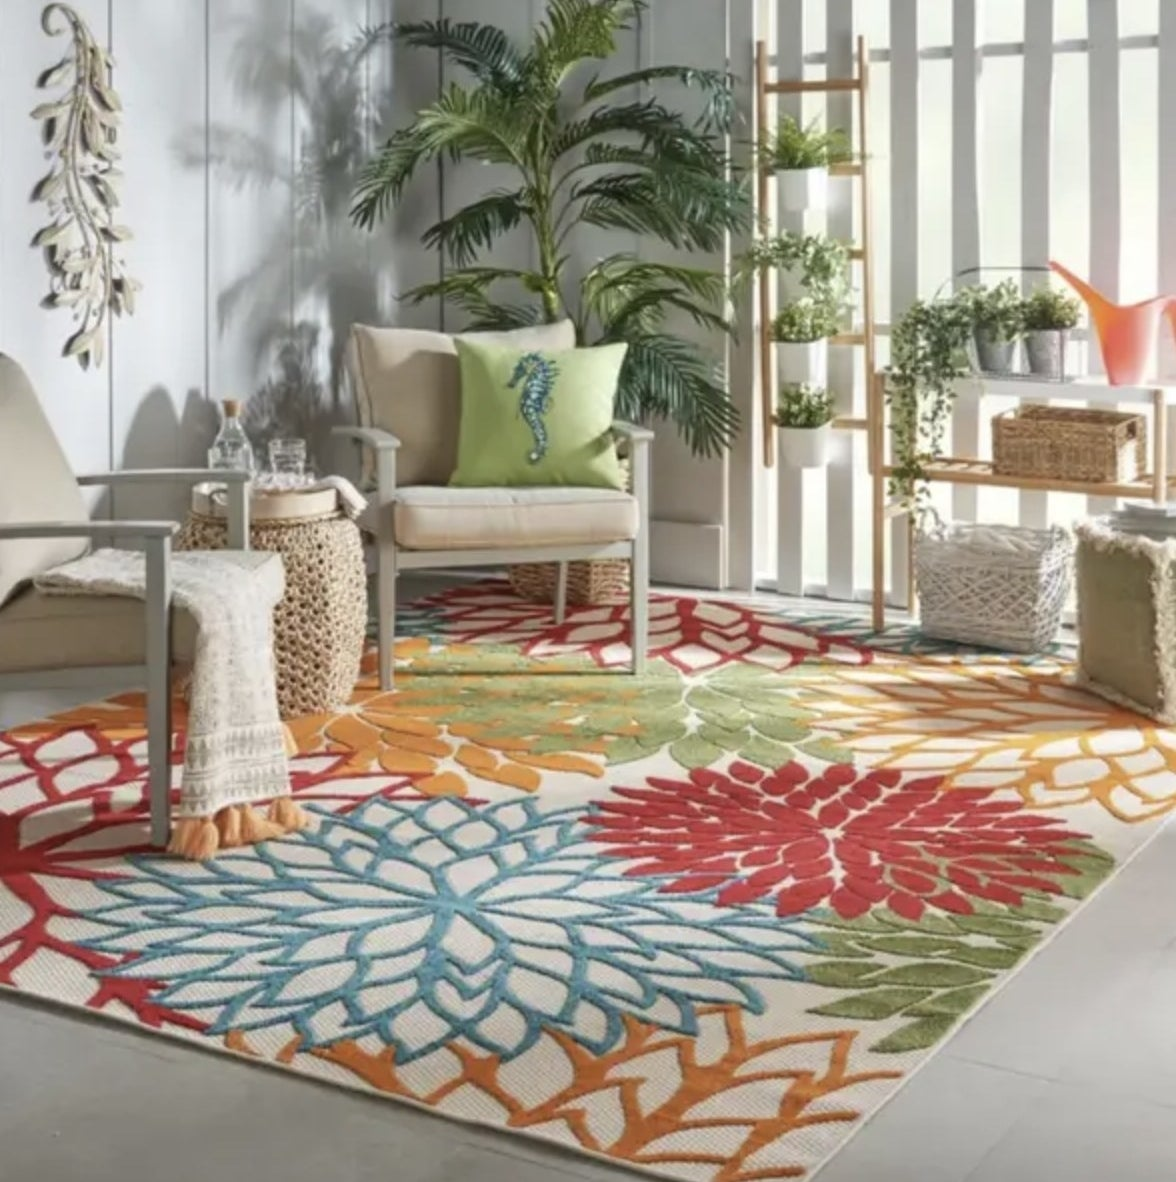 the rug in multicolor